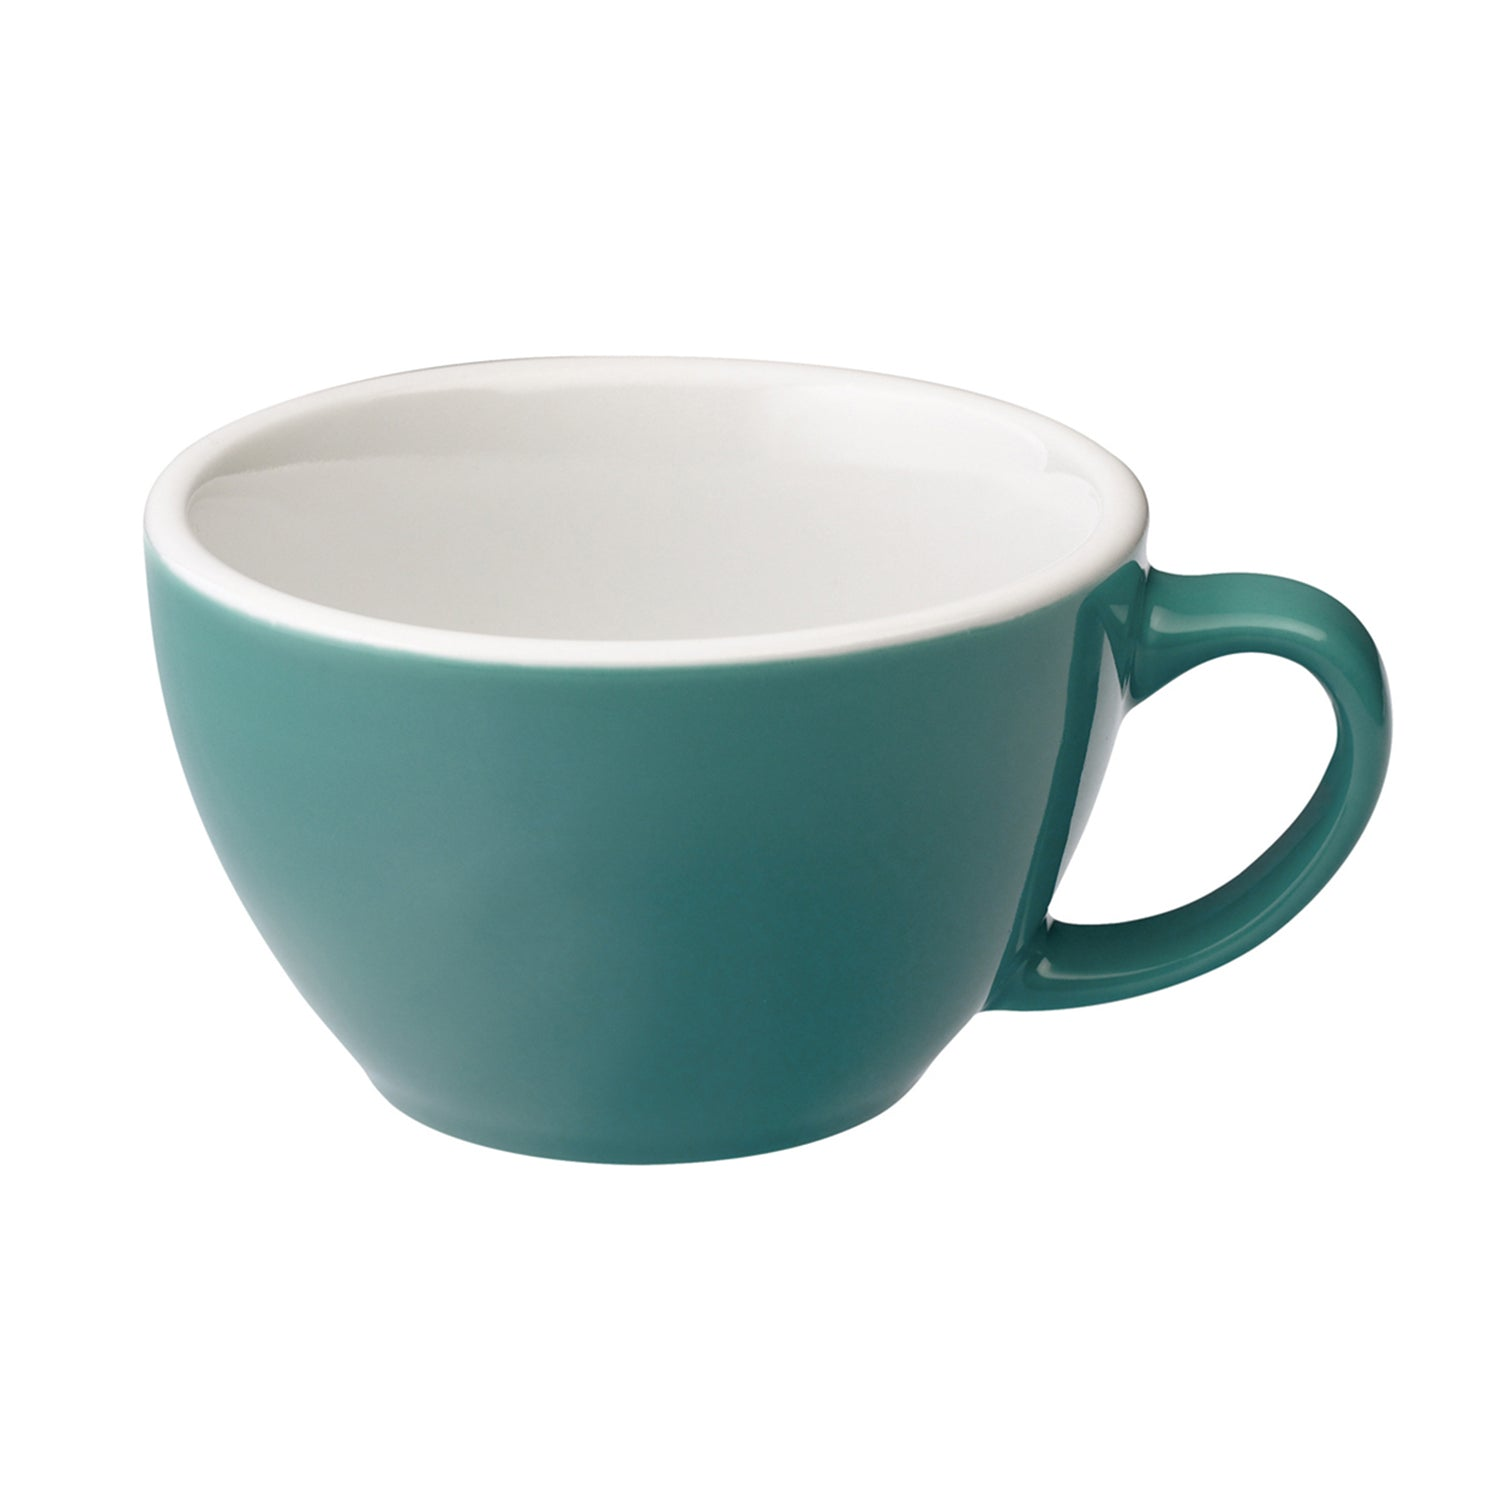 Loveramics Egg Latte Cup (Teal) 300ml